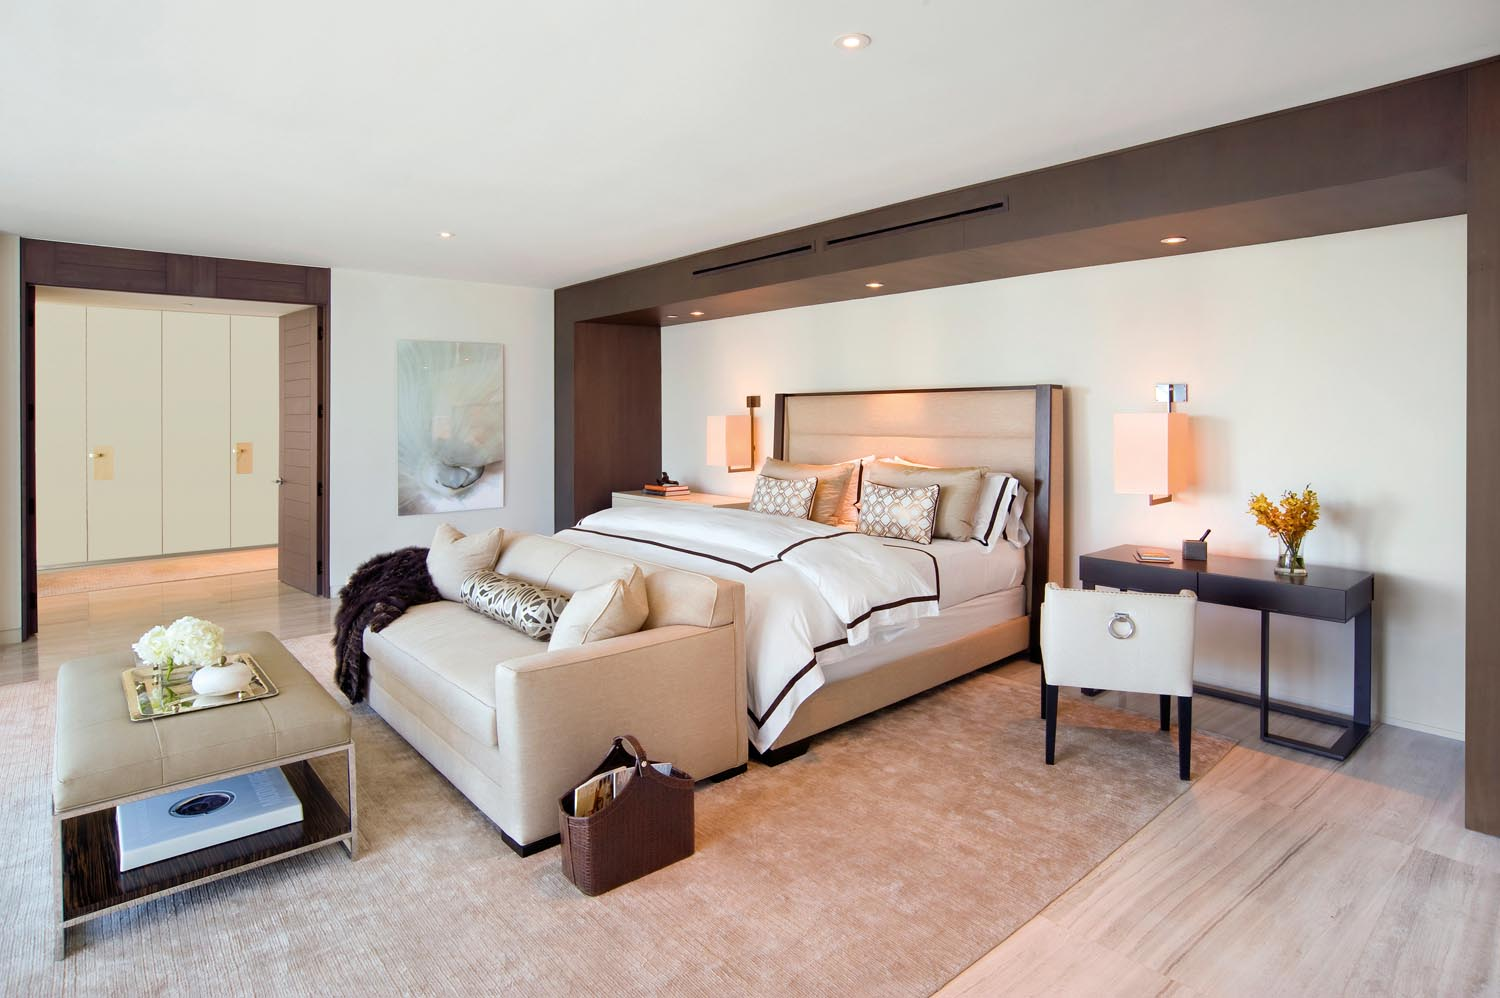 A lounge at the foot of the bed makes the ideal place to relax before a good night's sleep